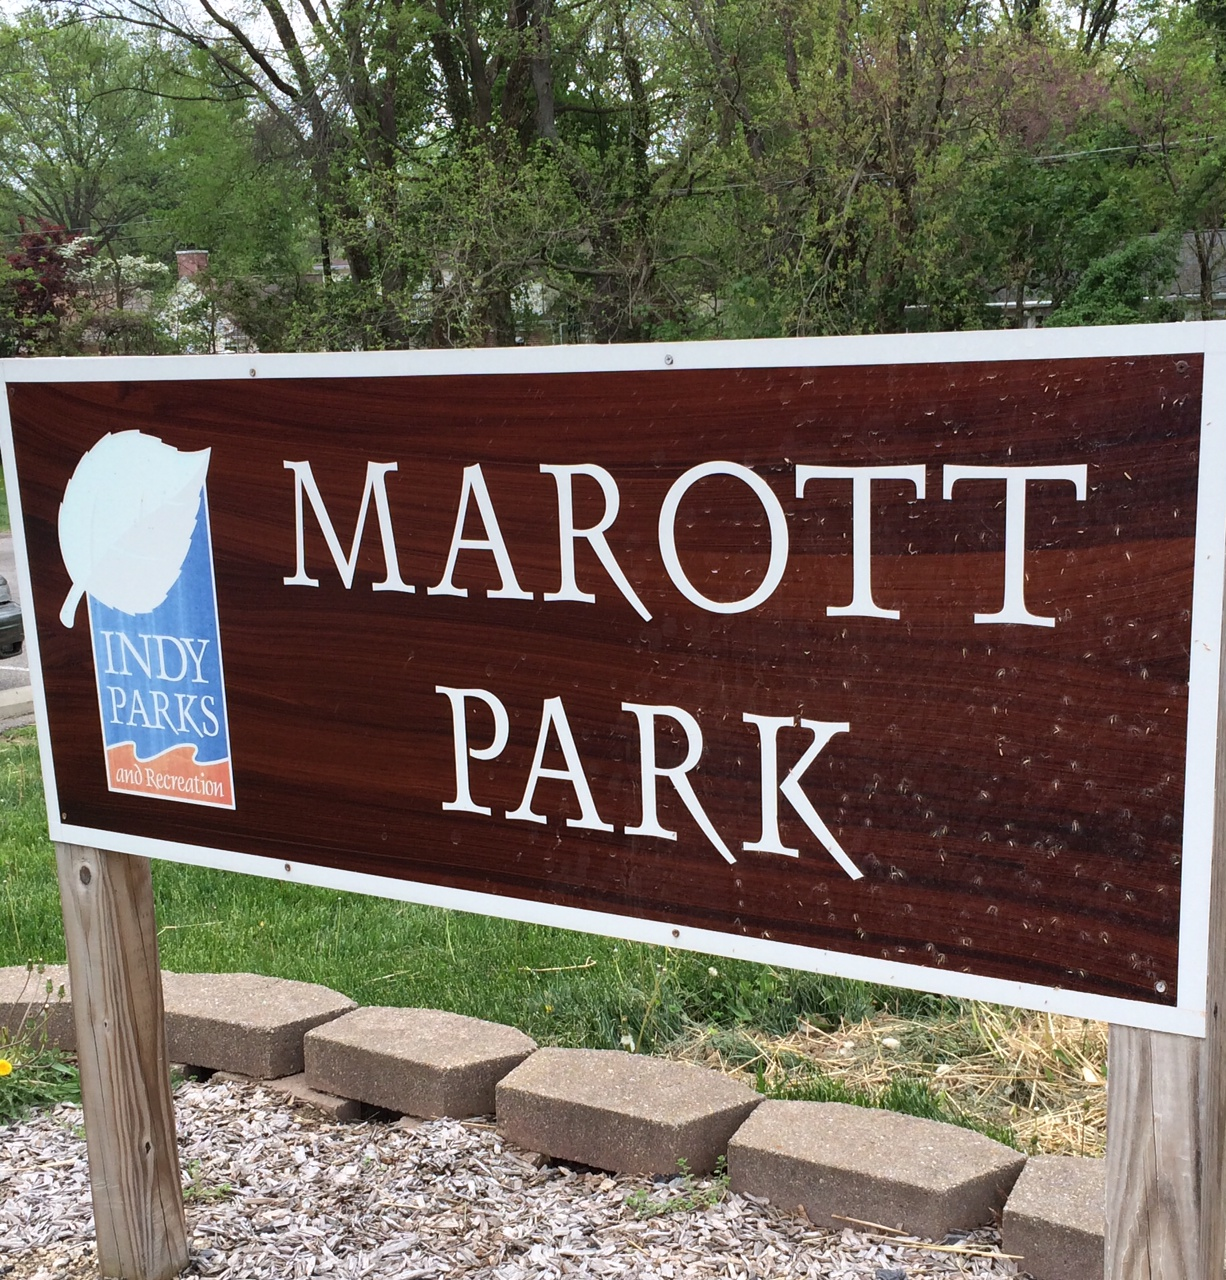 In the Park: Marott Park